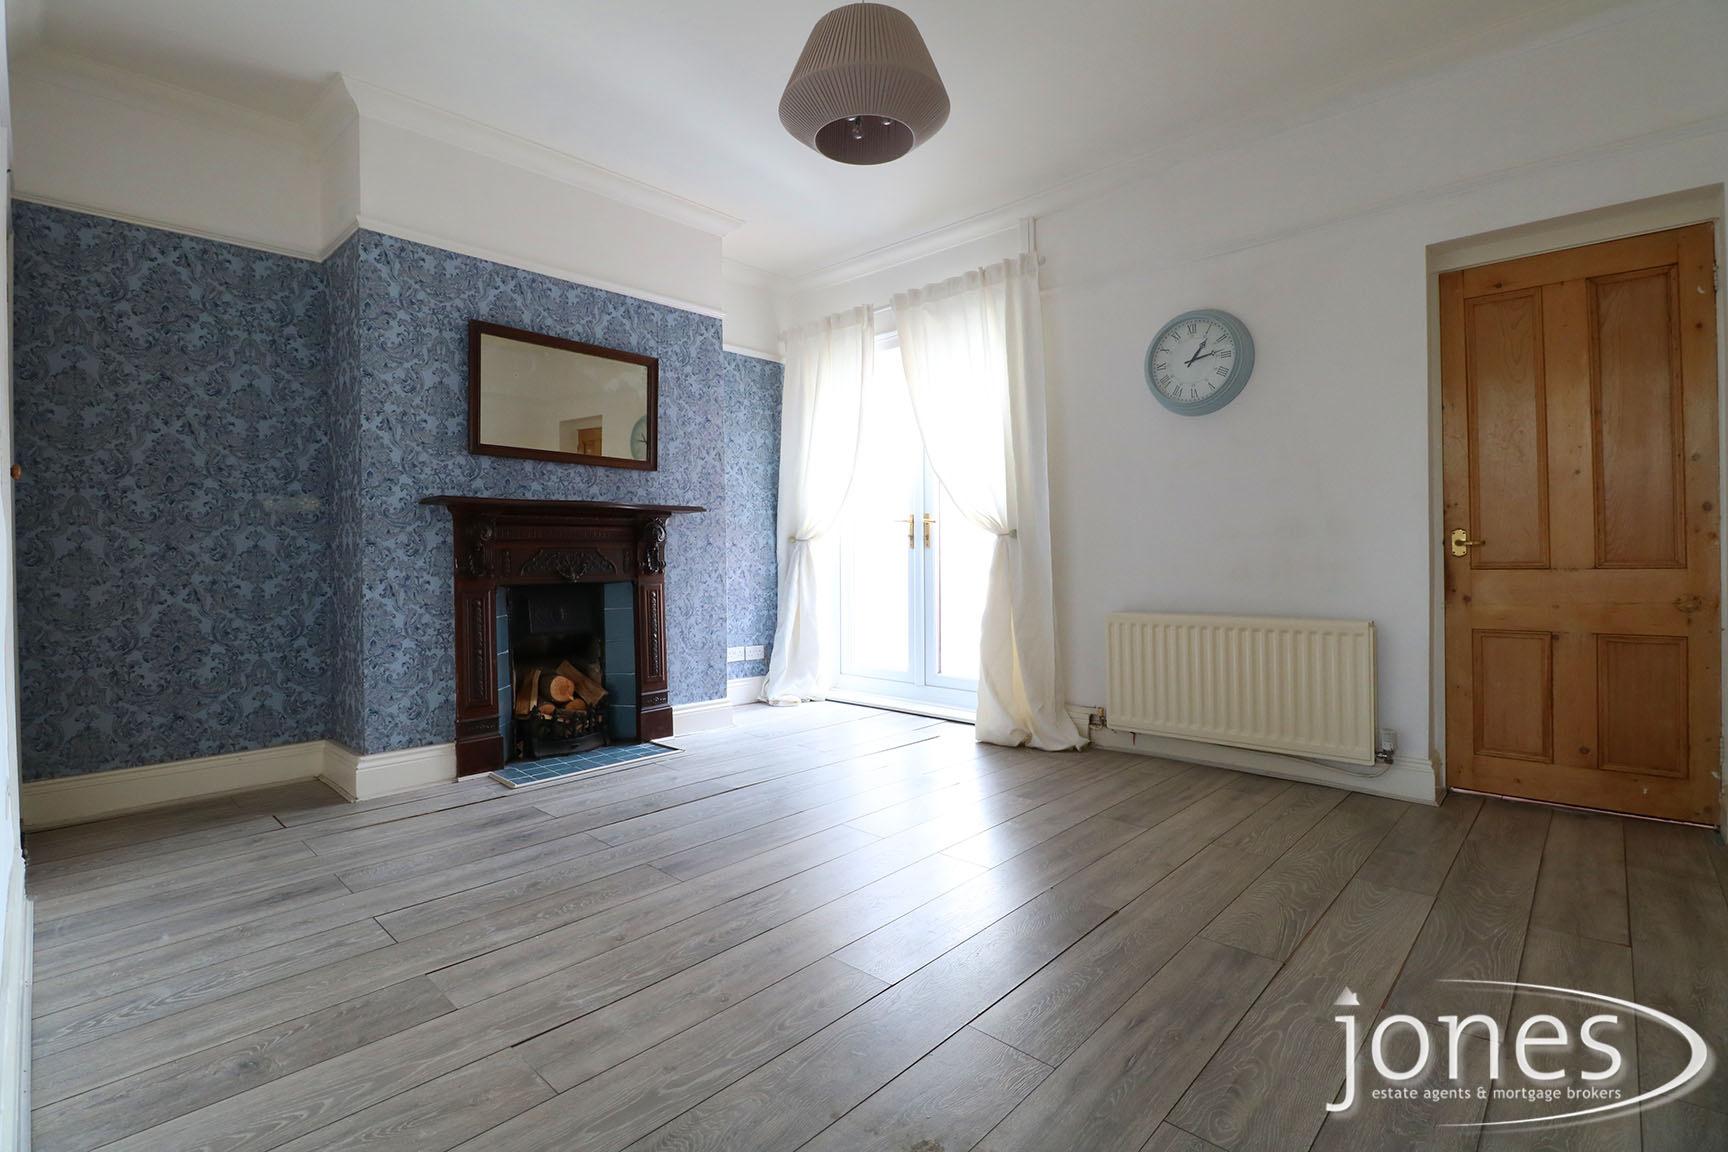 Home for Sale Let - Photo 04 Station Road Norton Stockton on Tees TS20 1PE